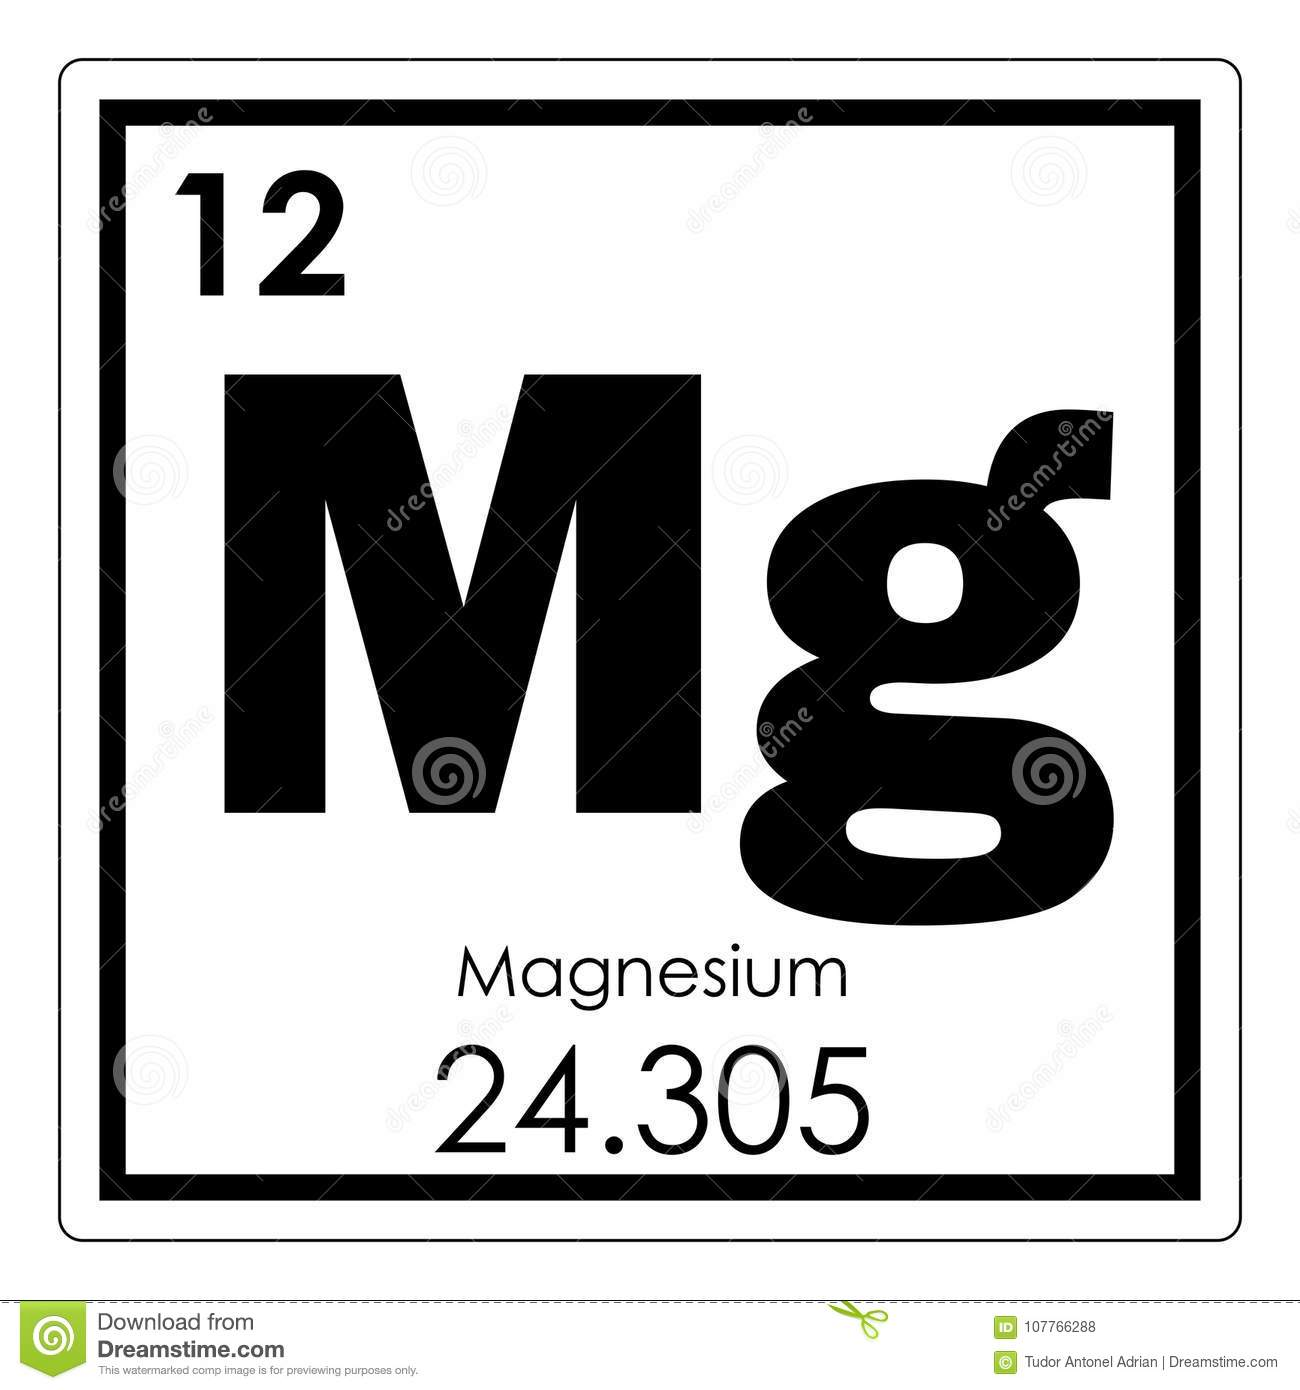 Magnesium chemical element stock illustration illustration of magnesium chemical element urtaz Choice Image